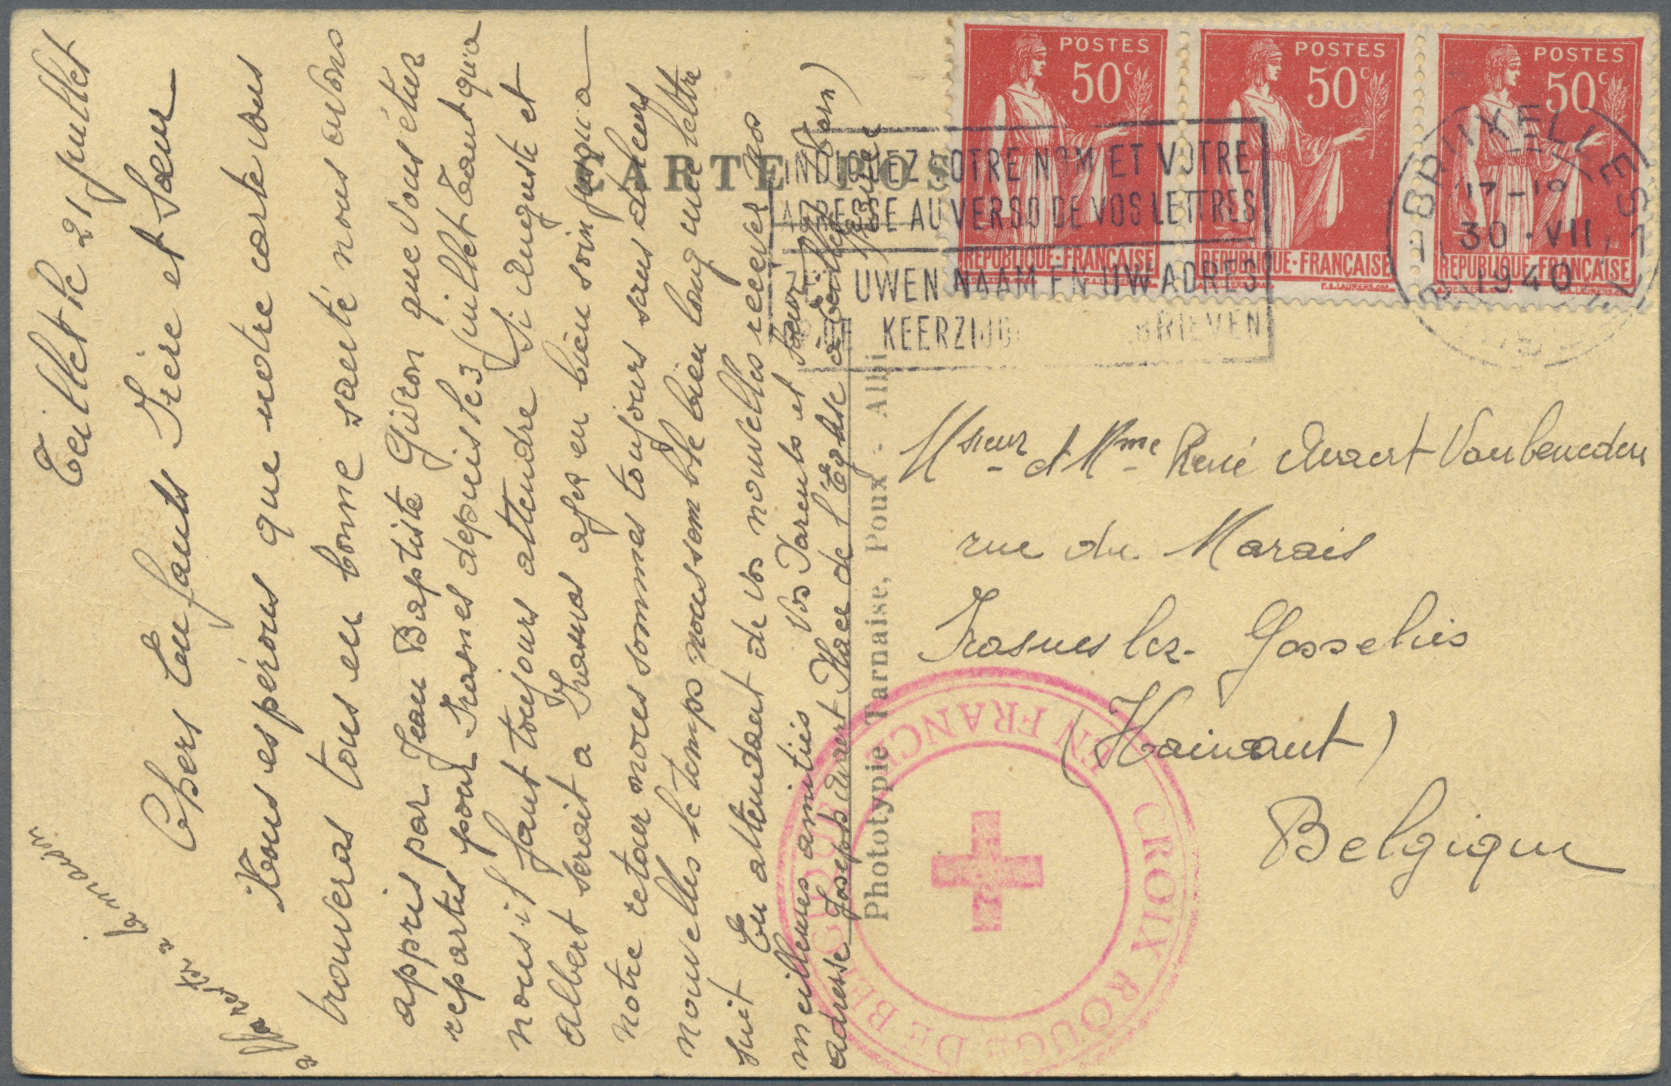 Lot 37640 - kriegsgefangenen-lagerpost  -  Auktionshaus Christoph Gärtner GmbH & Co. KG Collections Germany,  Collections Supplement, Surprise boxes #39 Day 7